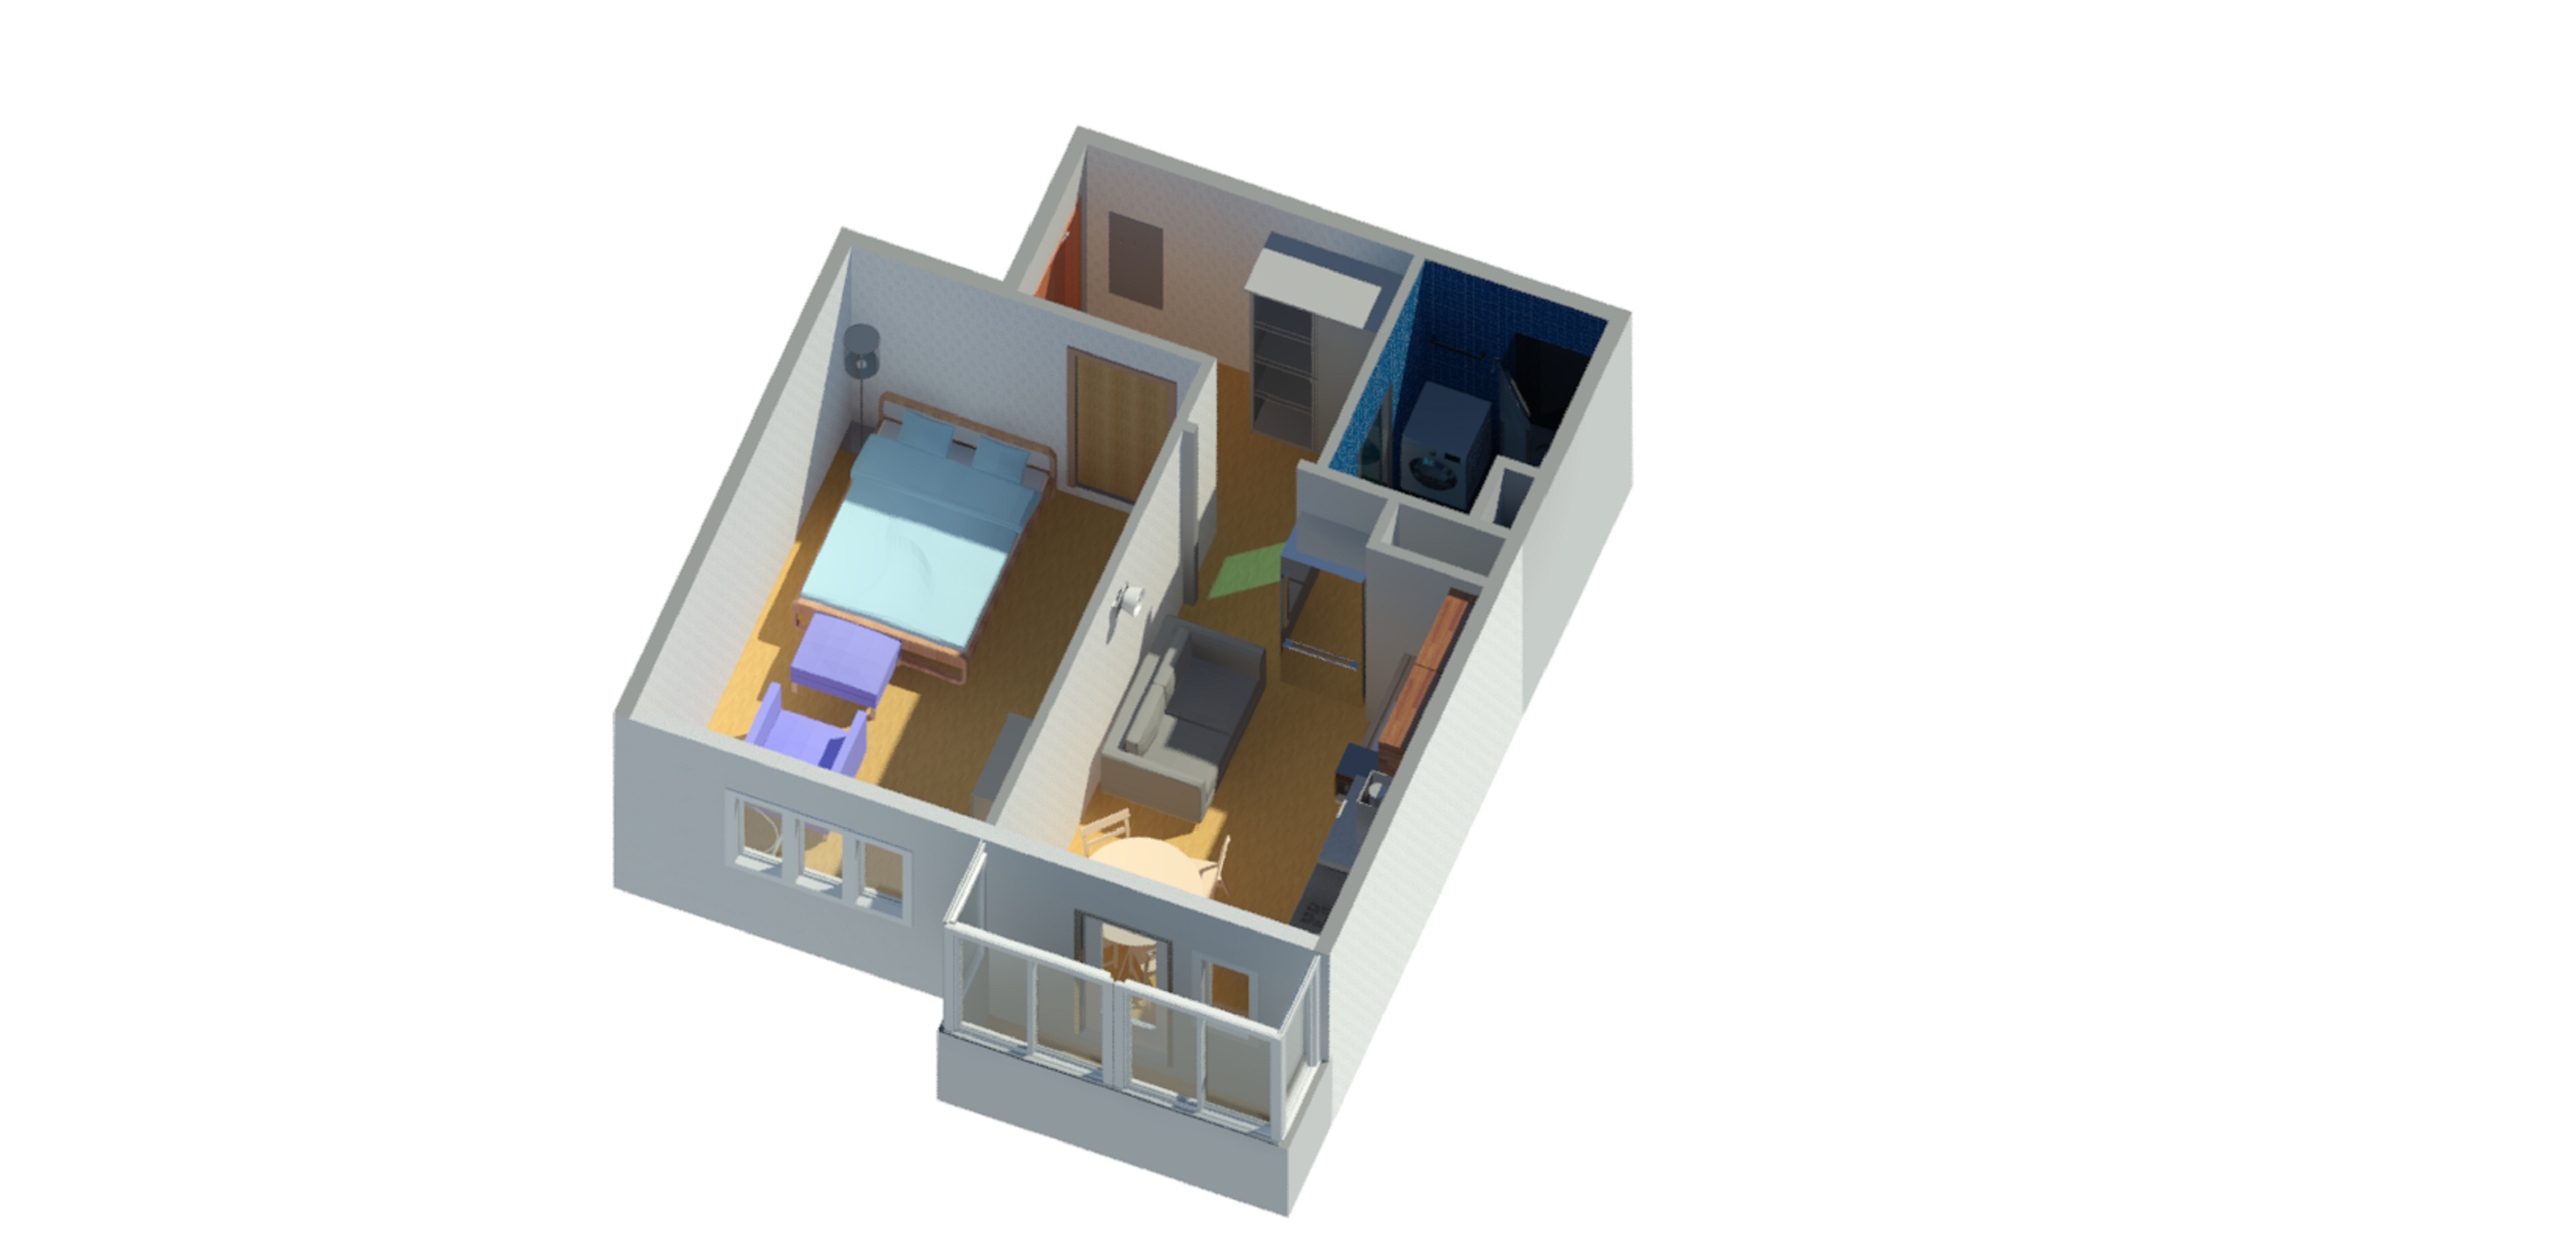 Design project one-room apartment by ParaaBellum | 3DOcean